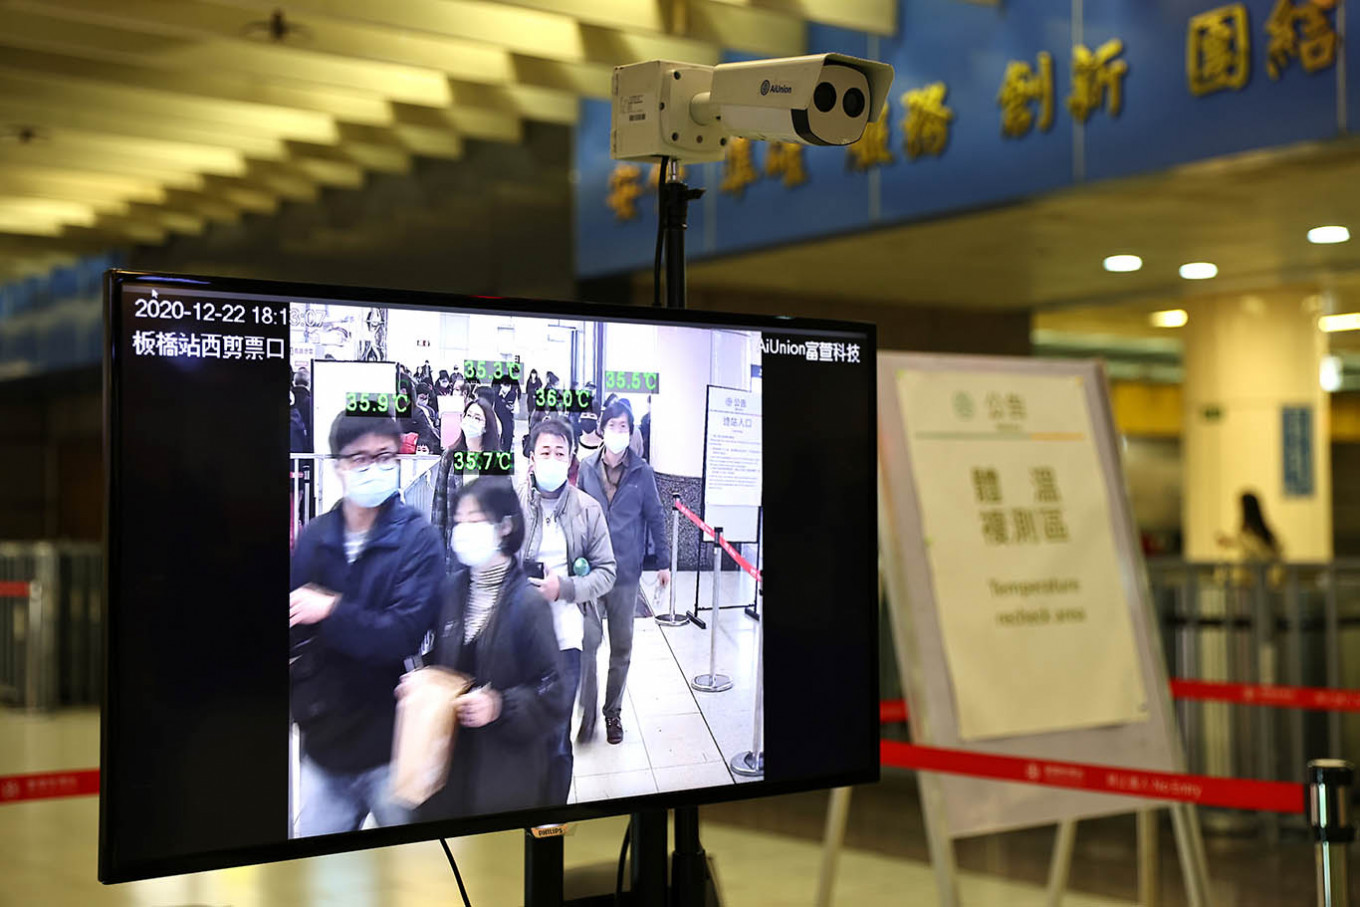 Taiwan reports two new domestically transmitted COVID-19 cases